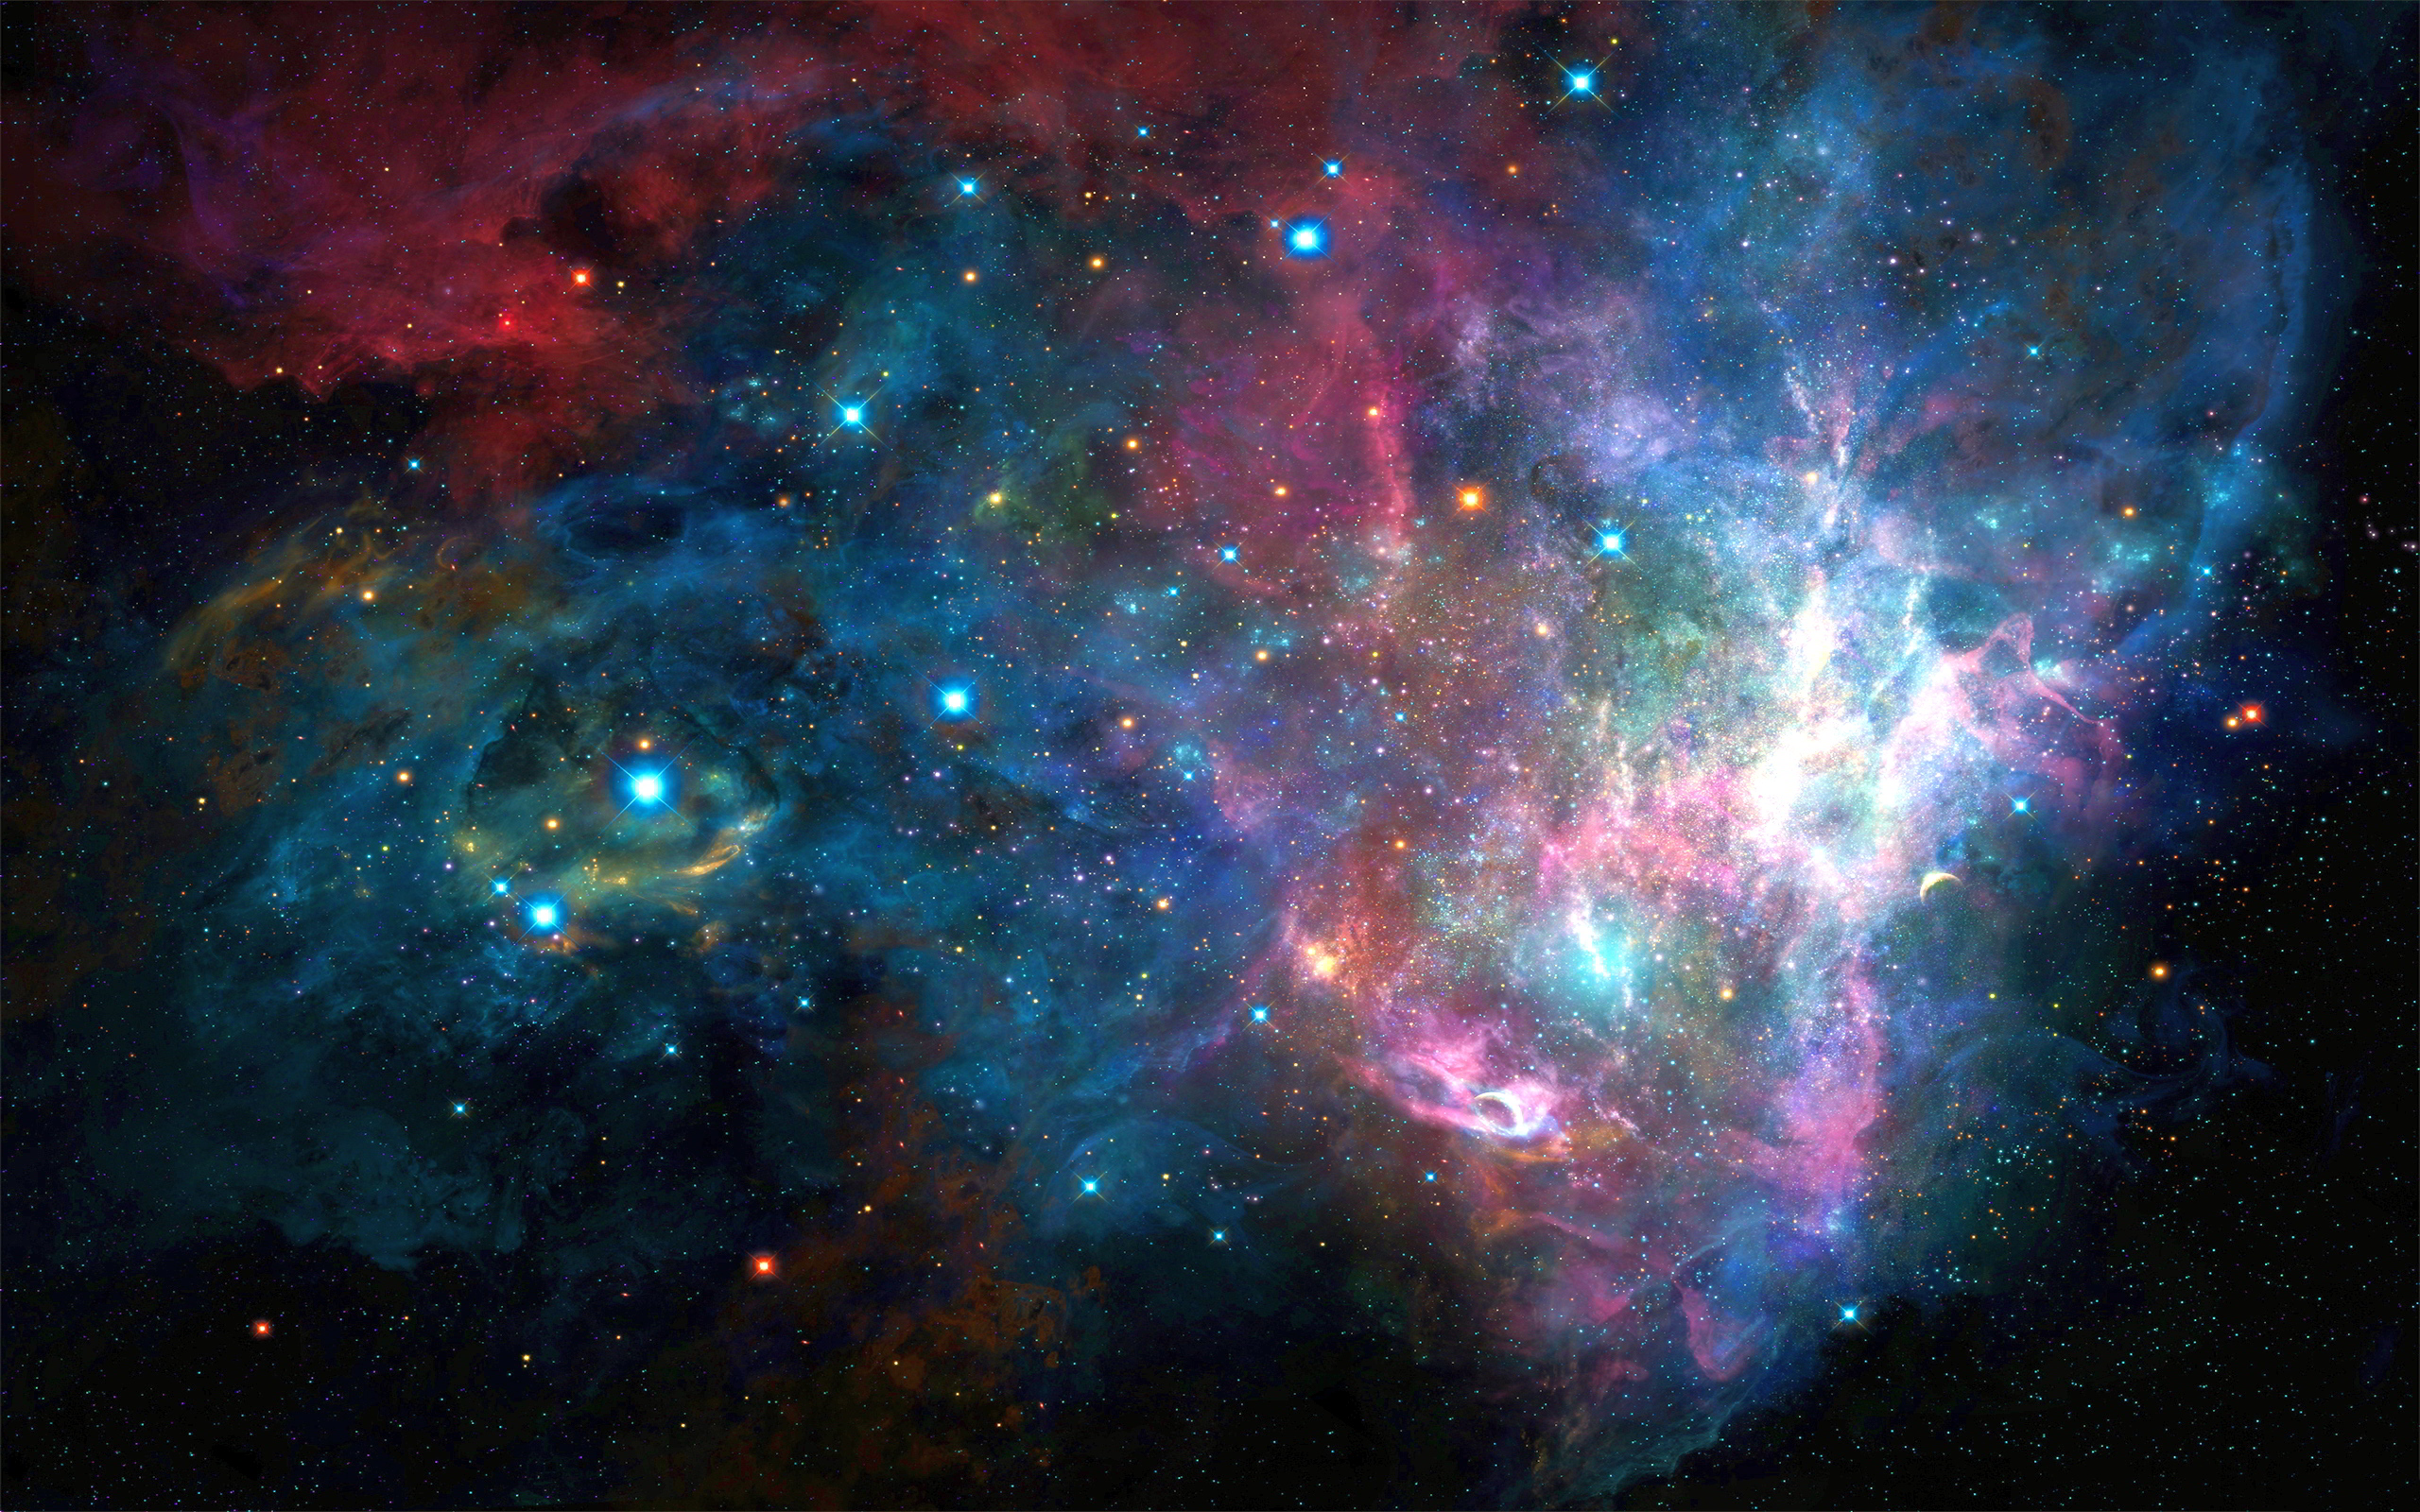 HD-Galaxy-Wallpapers-Free-Download-111